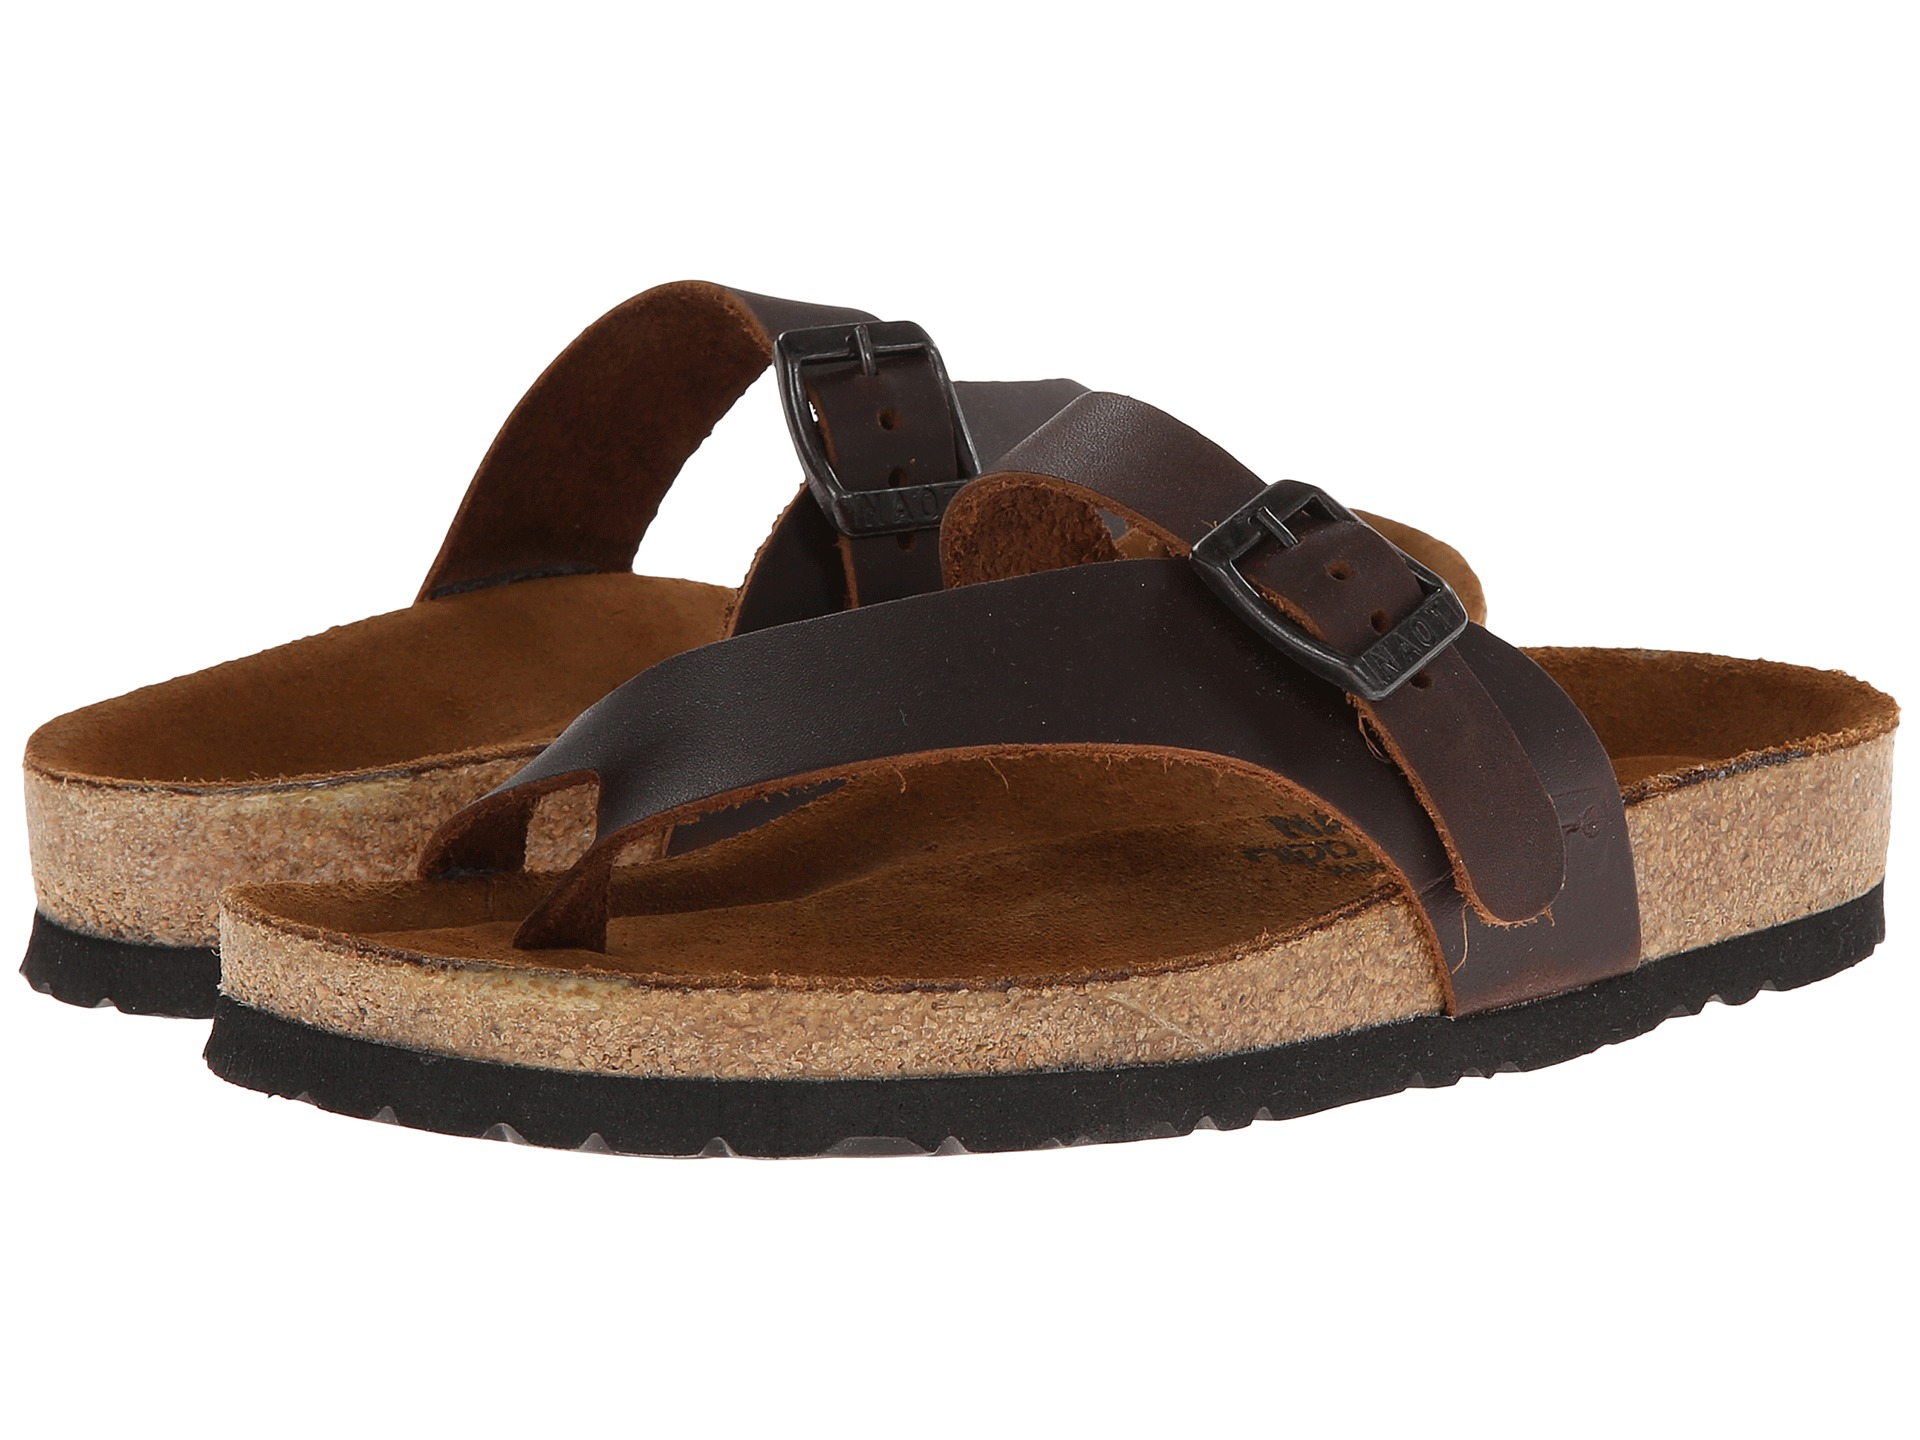 b02d098424d naot sandals sale   OFF33% Discounted